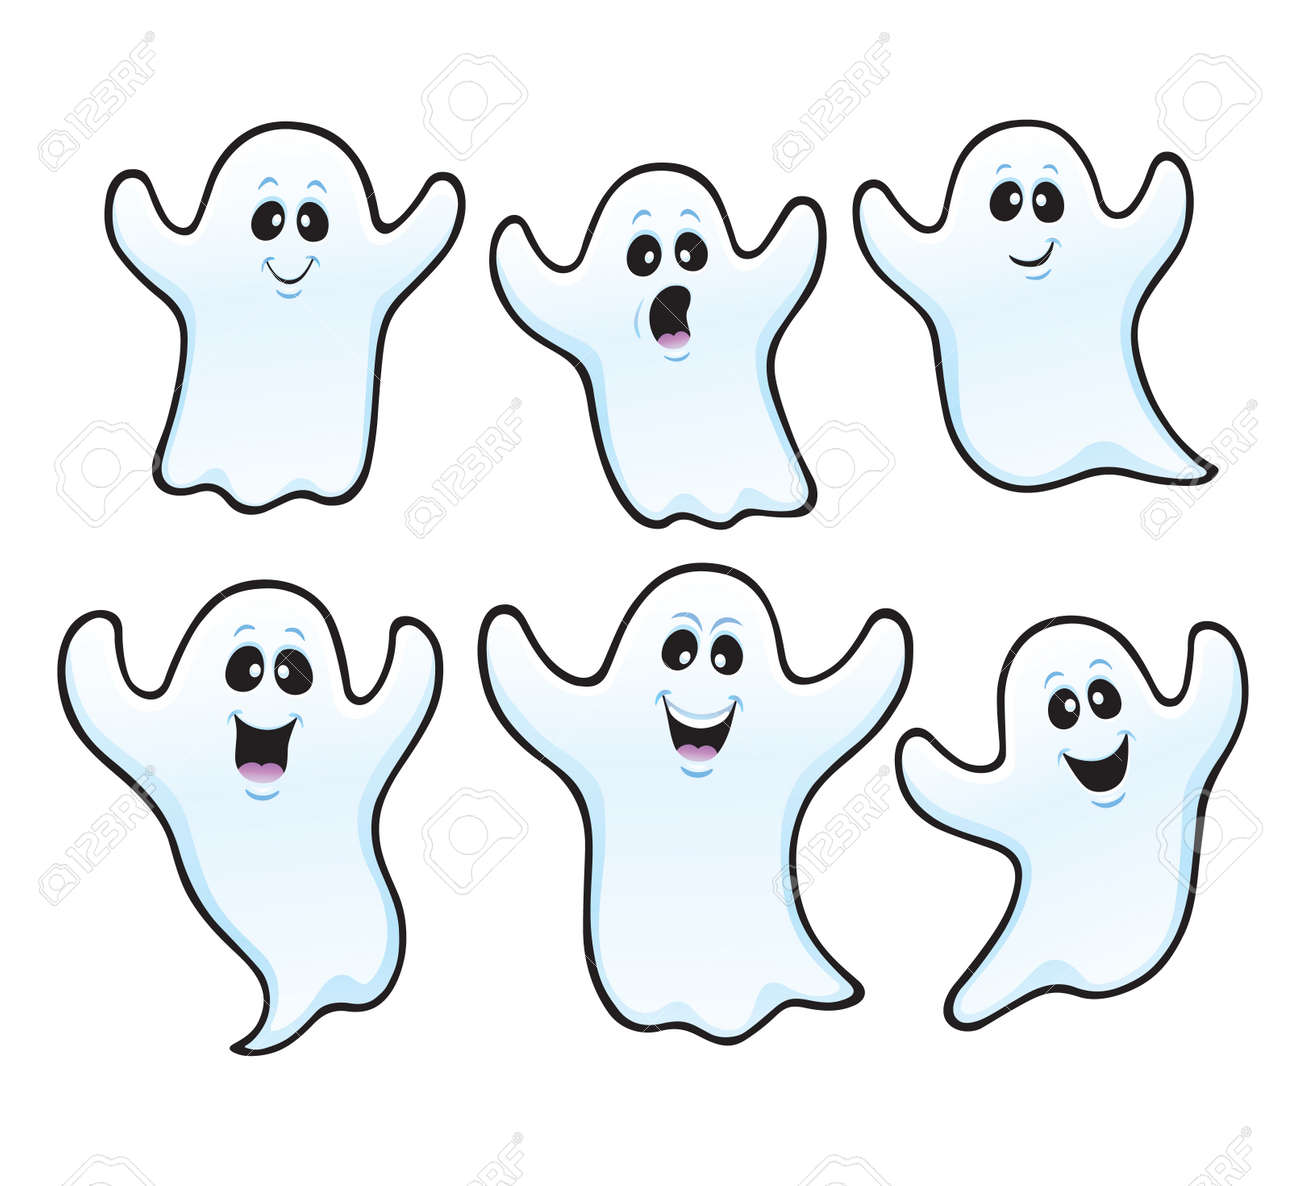 Six Spooky Ghosts For Halloween Royalty Free Cliparts Vectors